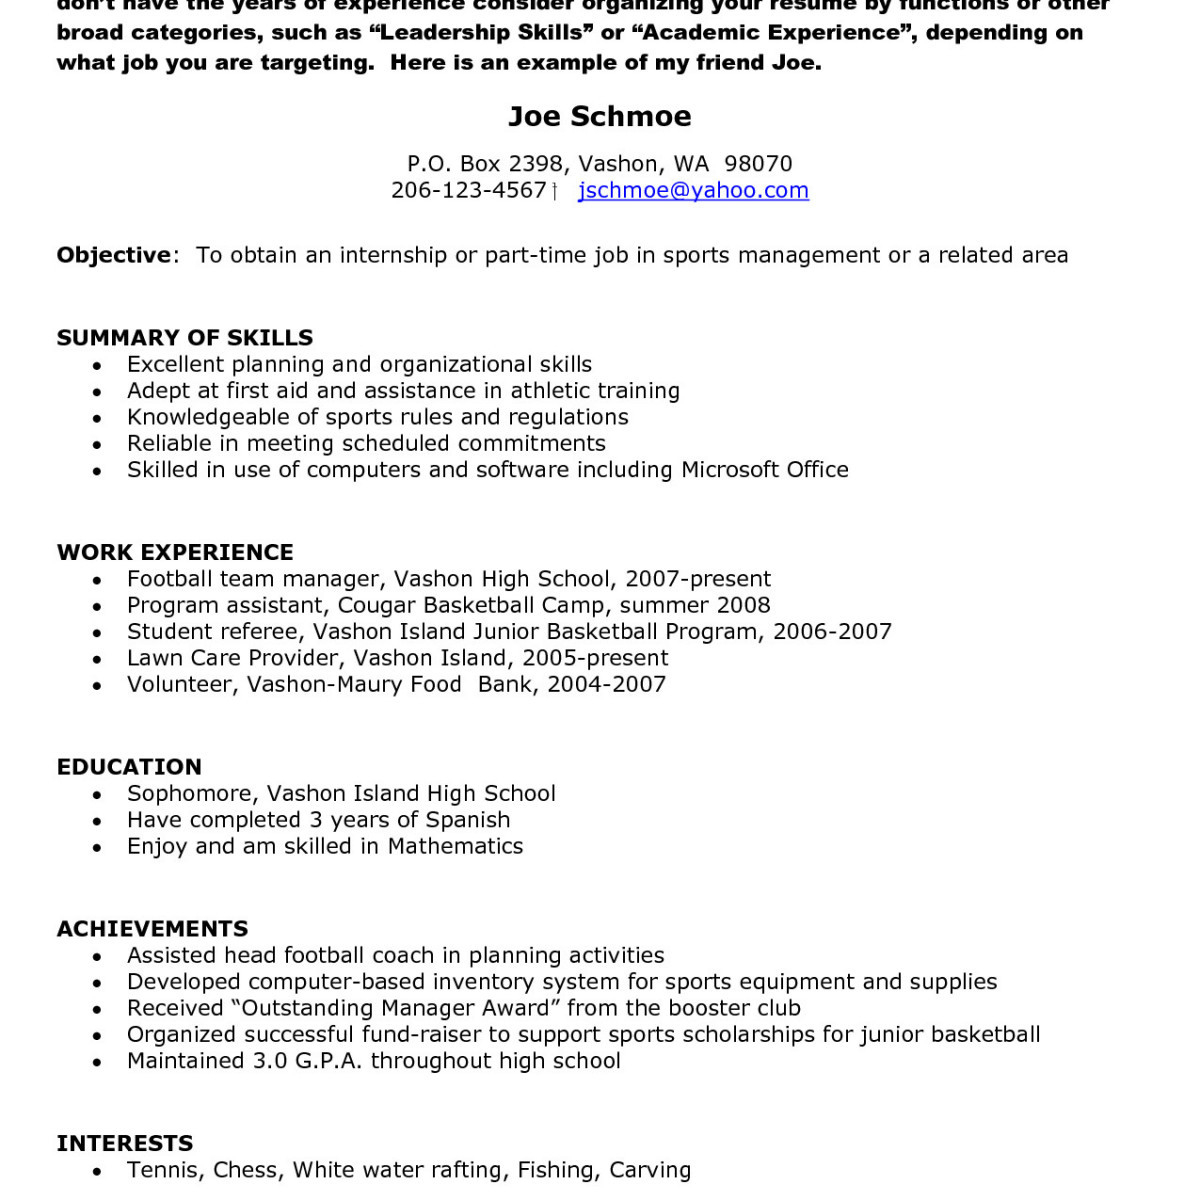 Resume Writing Template - Resume Writing Tips Fresh Beautiful Development Resume Sample Resume